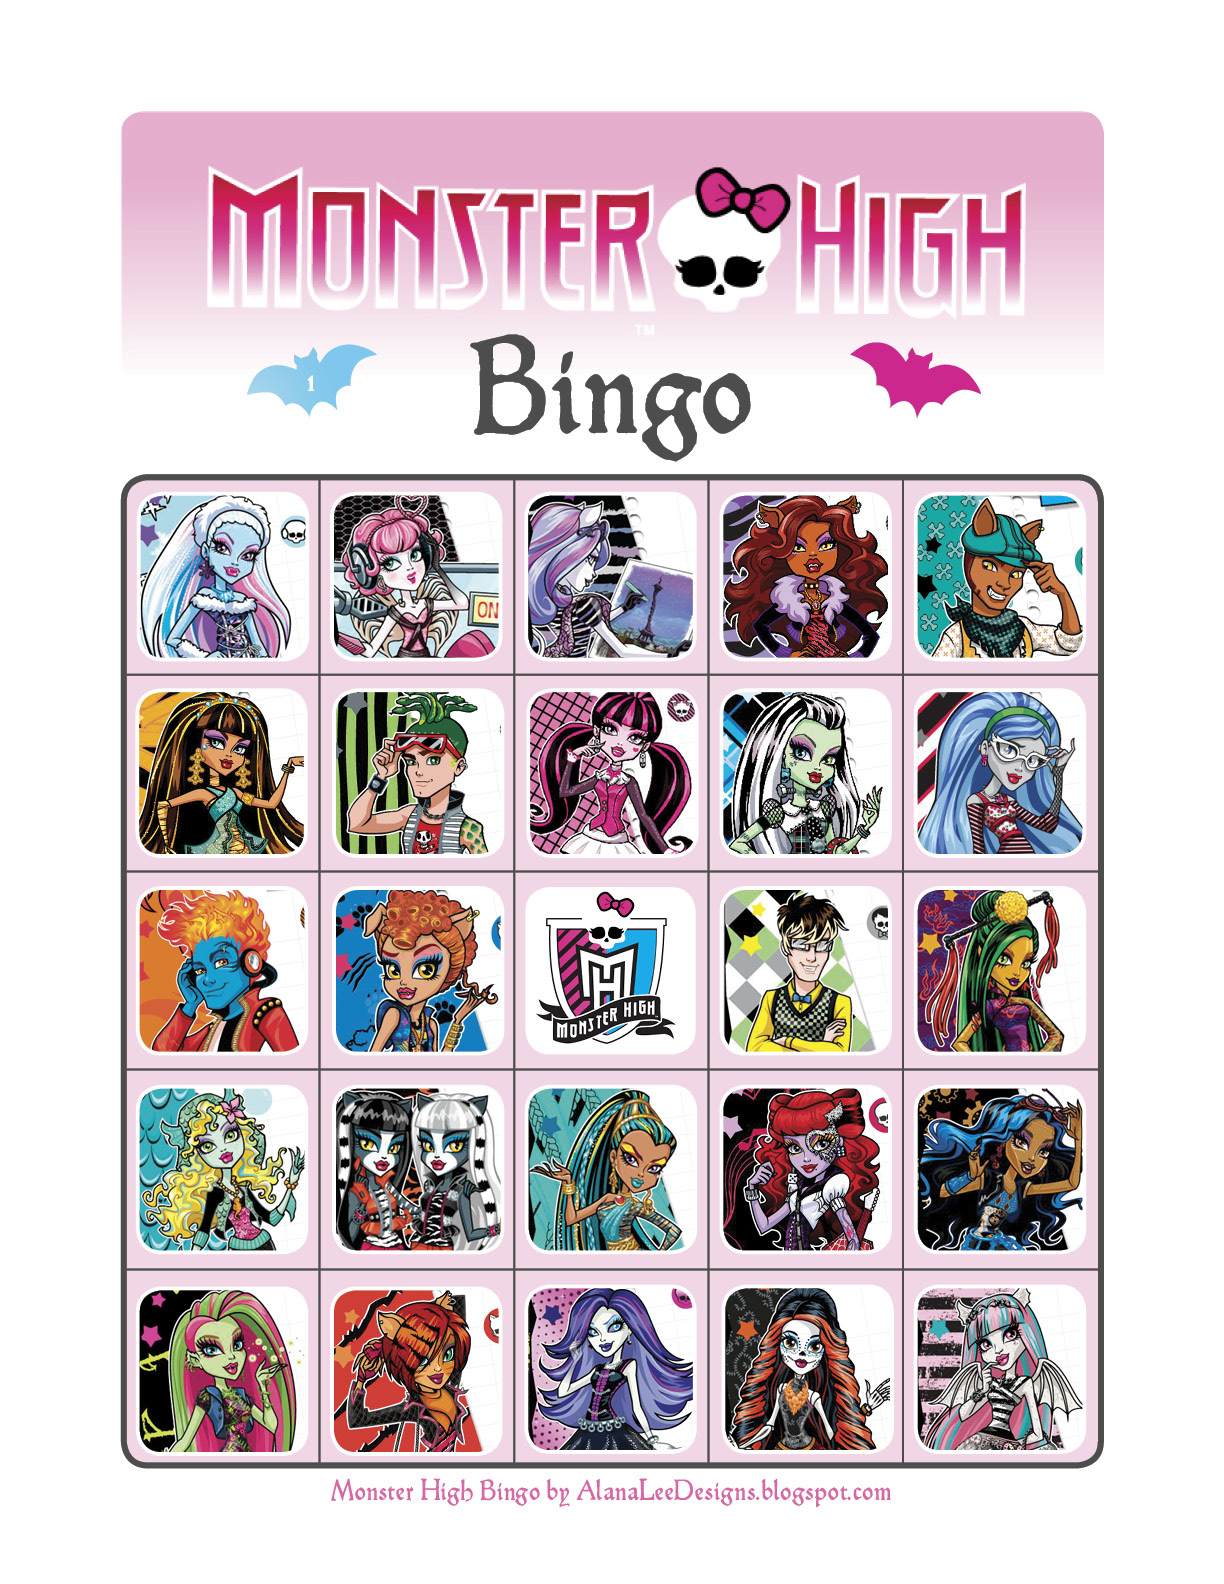 Worksheet Monster High Worksheets alana lee designs custom photo products with personality free including draculaura clawdeen wolf clawd frankie stein cleo de nile lagoona and ghoulia yelps plus brand new characters